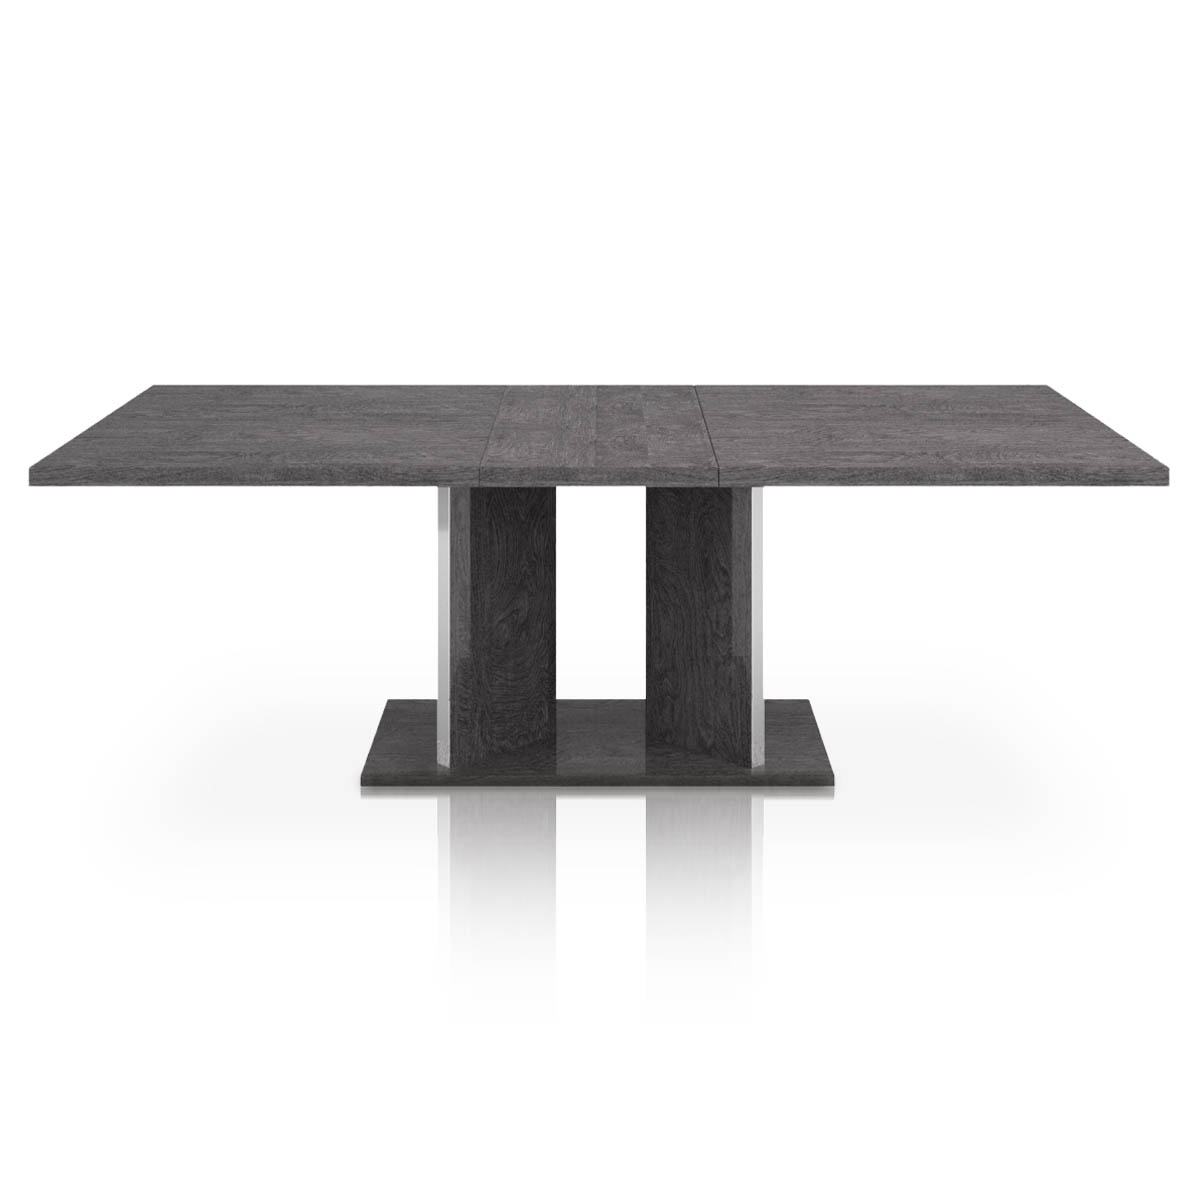 100+ [ Extension Dining Room Tables ] | Designs Vineyard Extension Inside Current Teagan Extension Dining Tables (View 19 of 20)